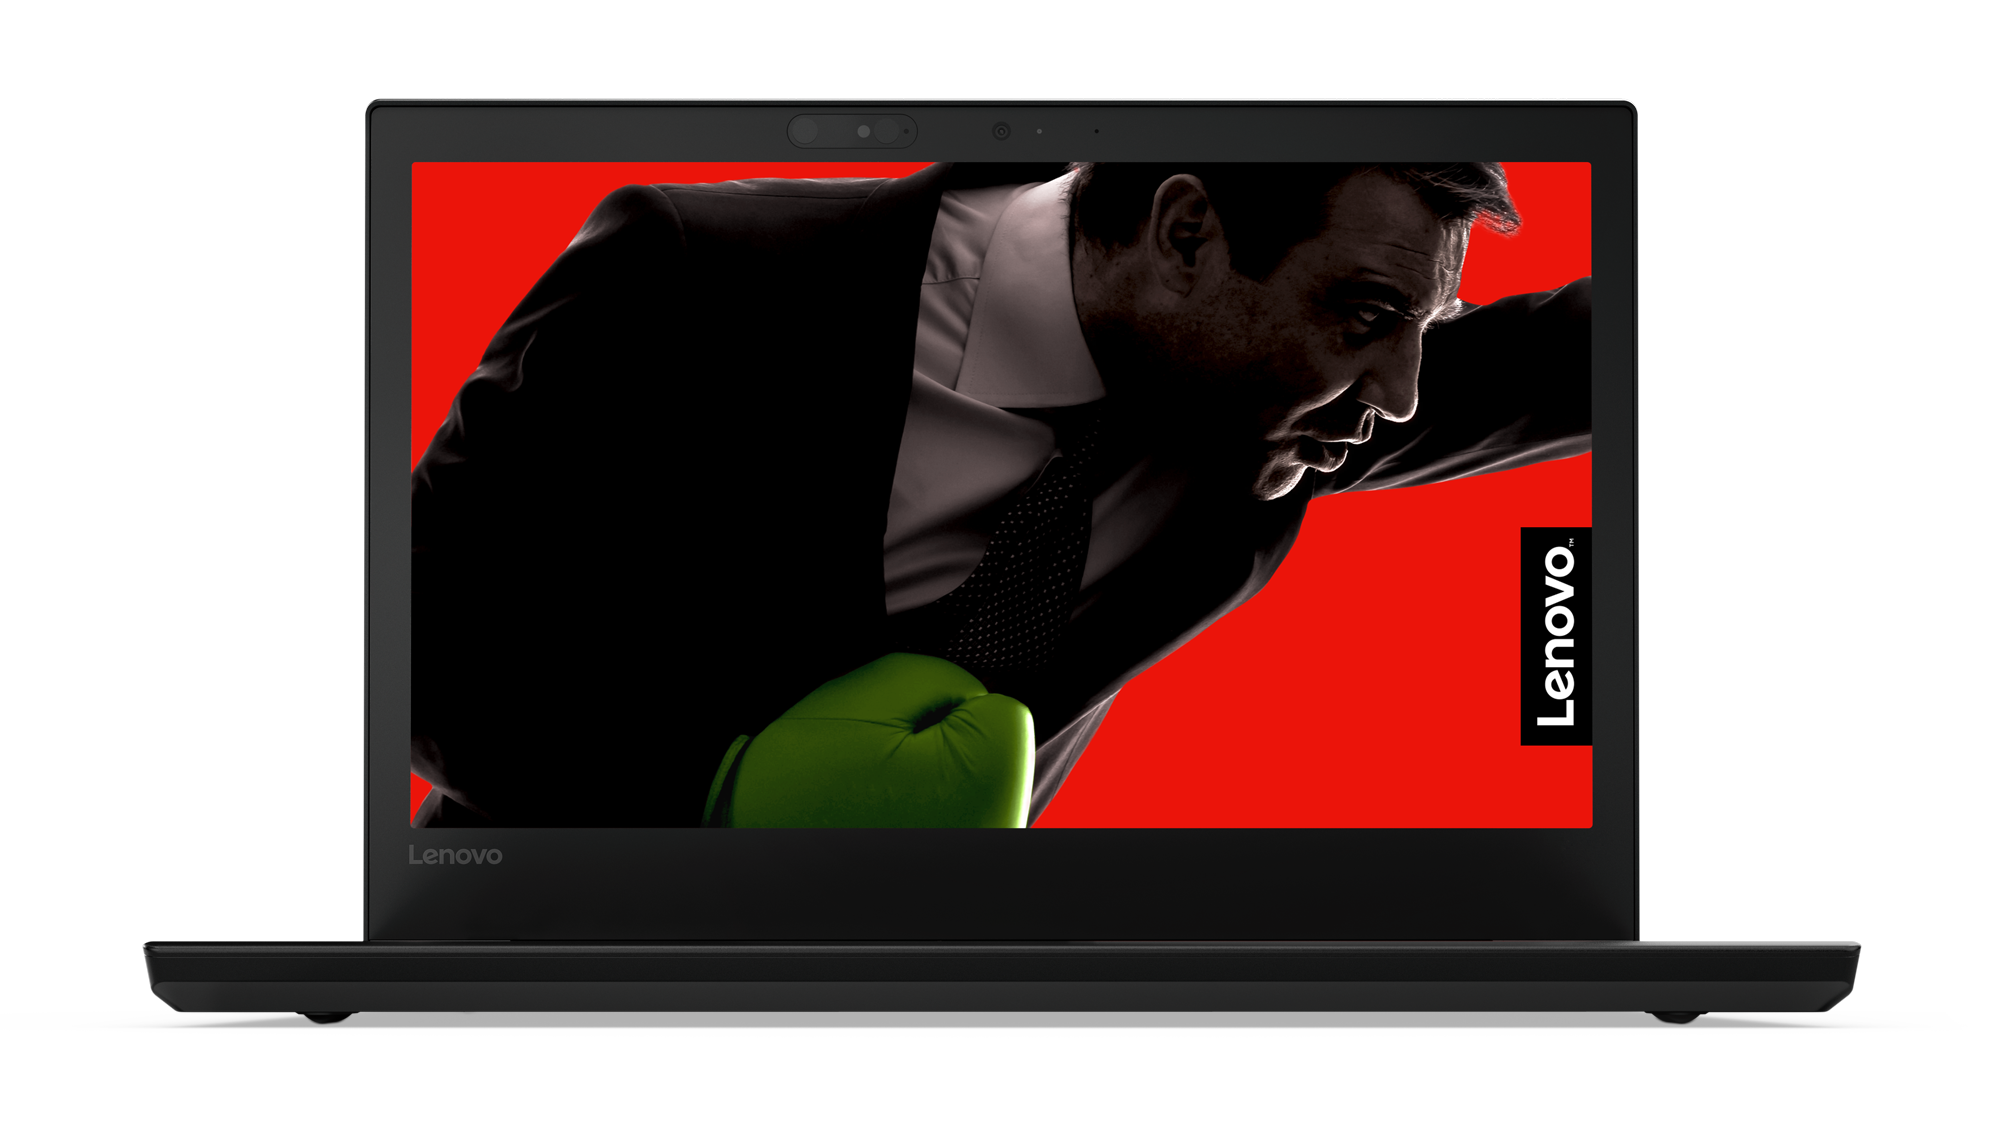 Lenovo reaches back in time with the new ThinkPad Anniversary Edition 25